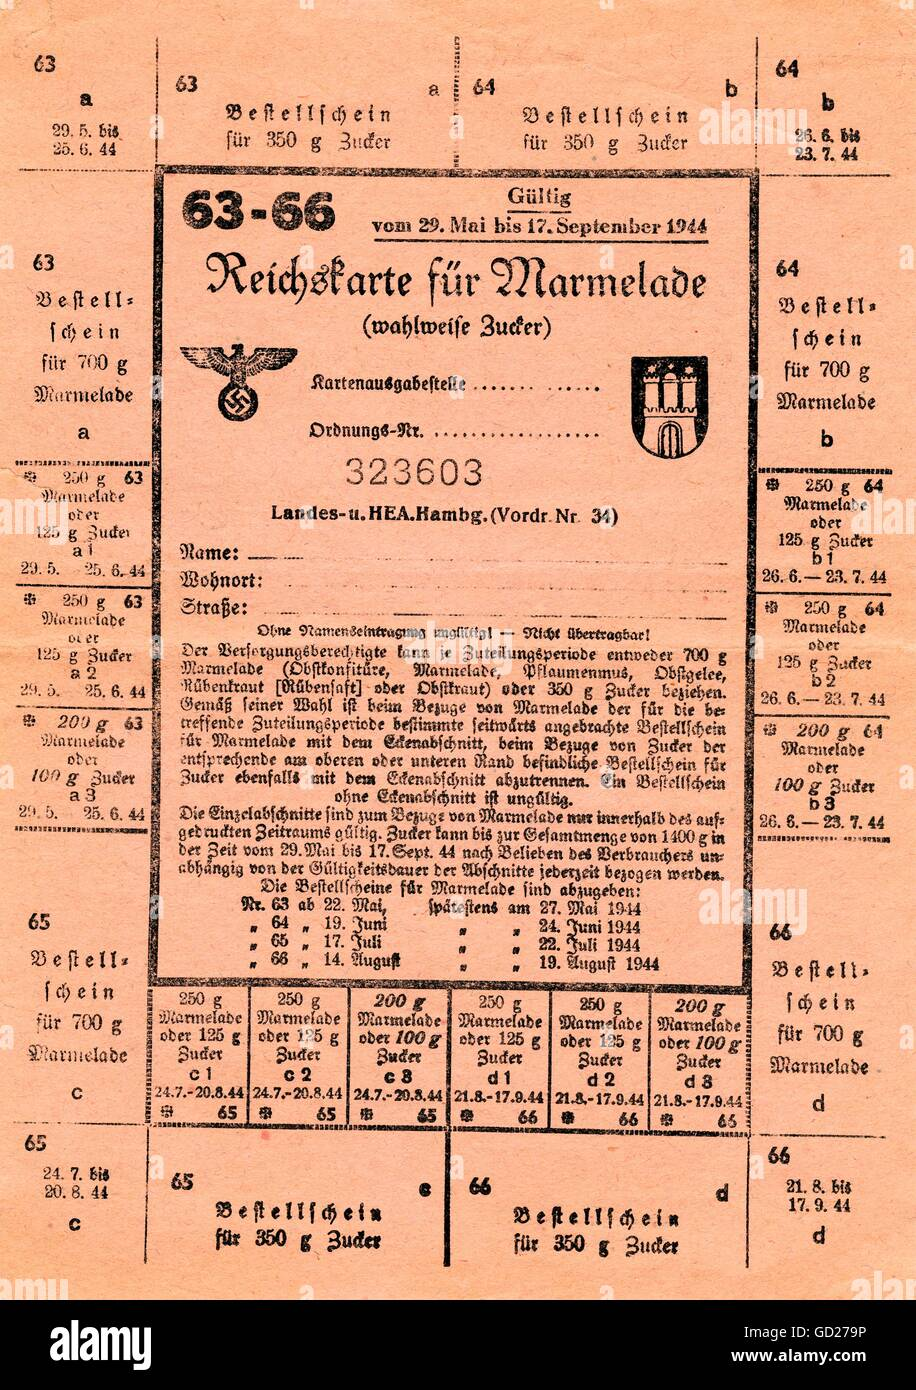 National Socialism, documents, Germany, Hamburg, the time of World War II and the Third Reich, food ration cards - Stock Image